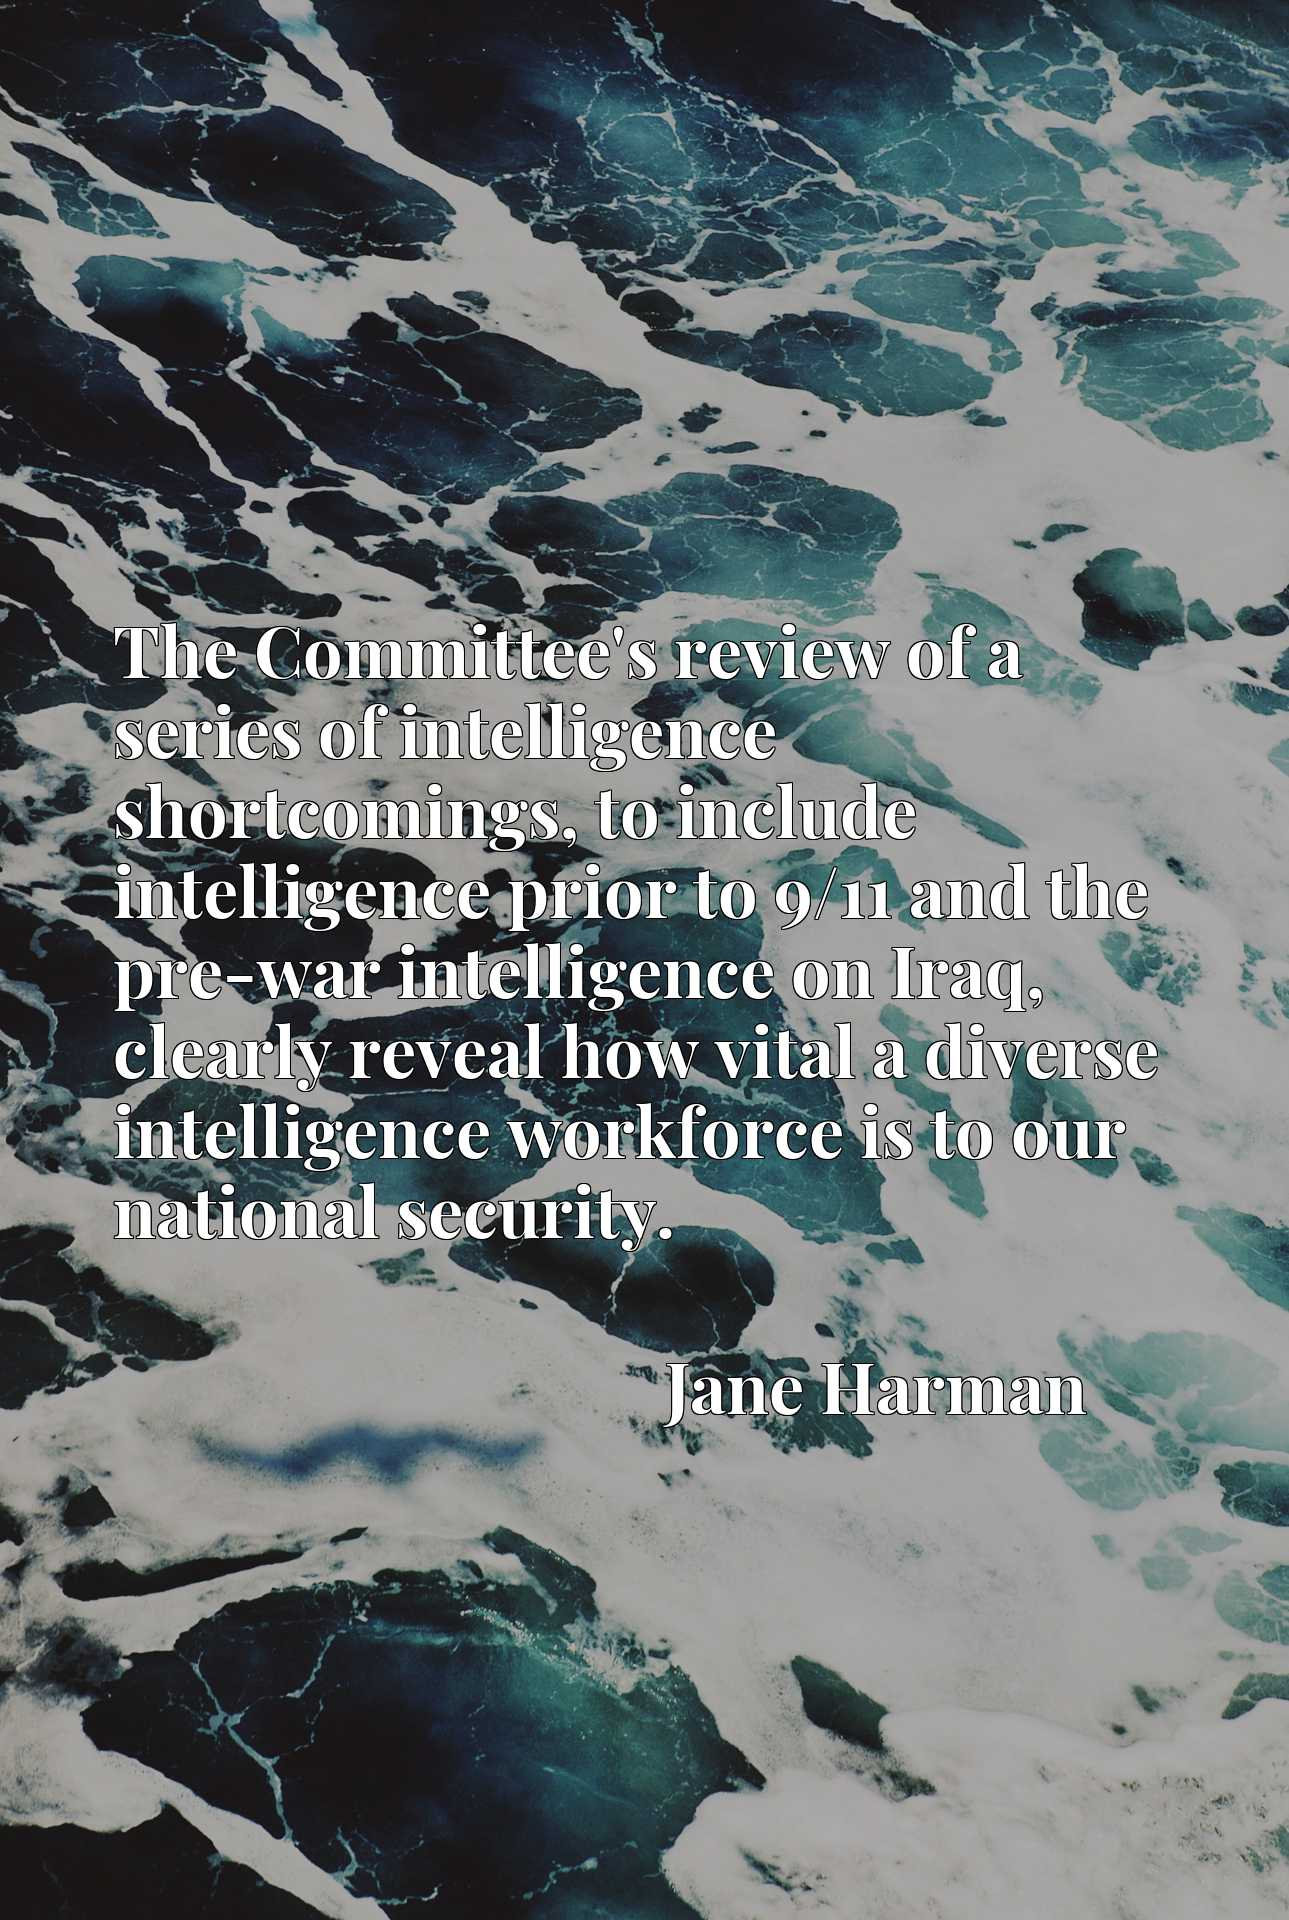 The Committee's review of a series of intelligence shortcomings, to include intelligence prior to 9/11 and the pre-war intelligence on Iraq, clearly reveal how vital a diverse intelligence workforce is to our national security.